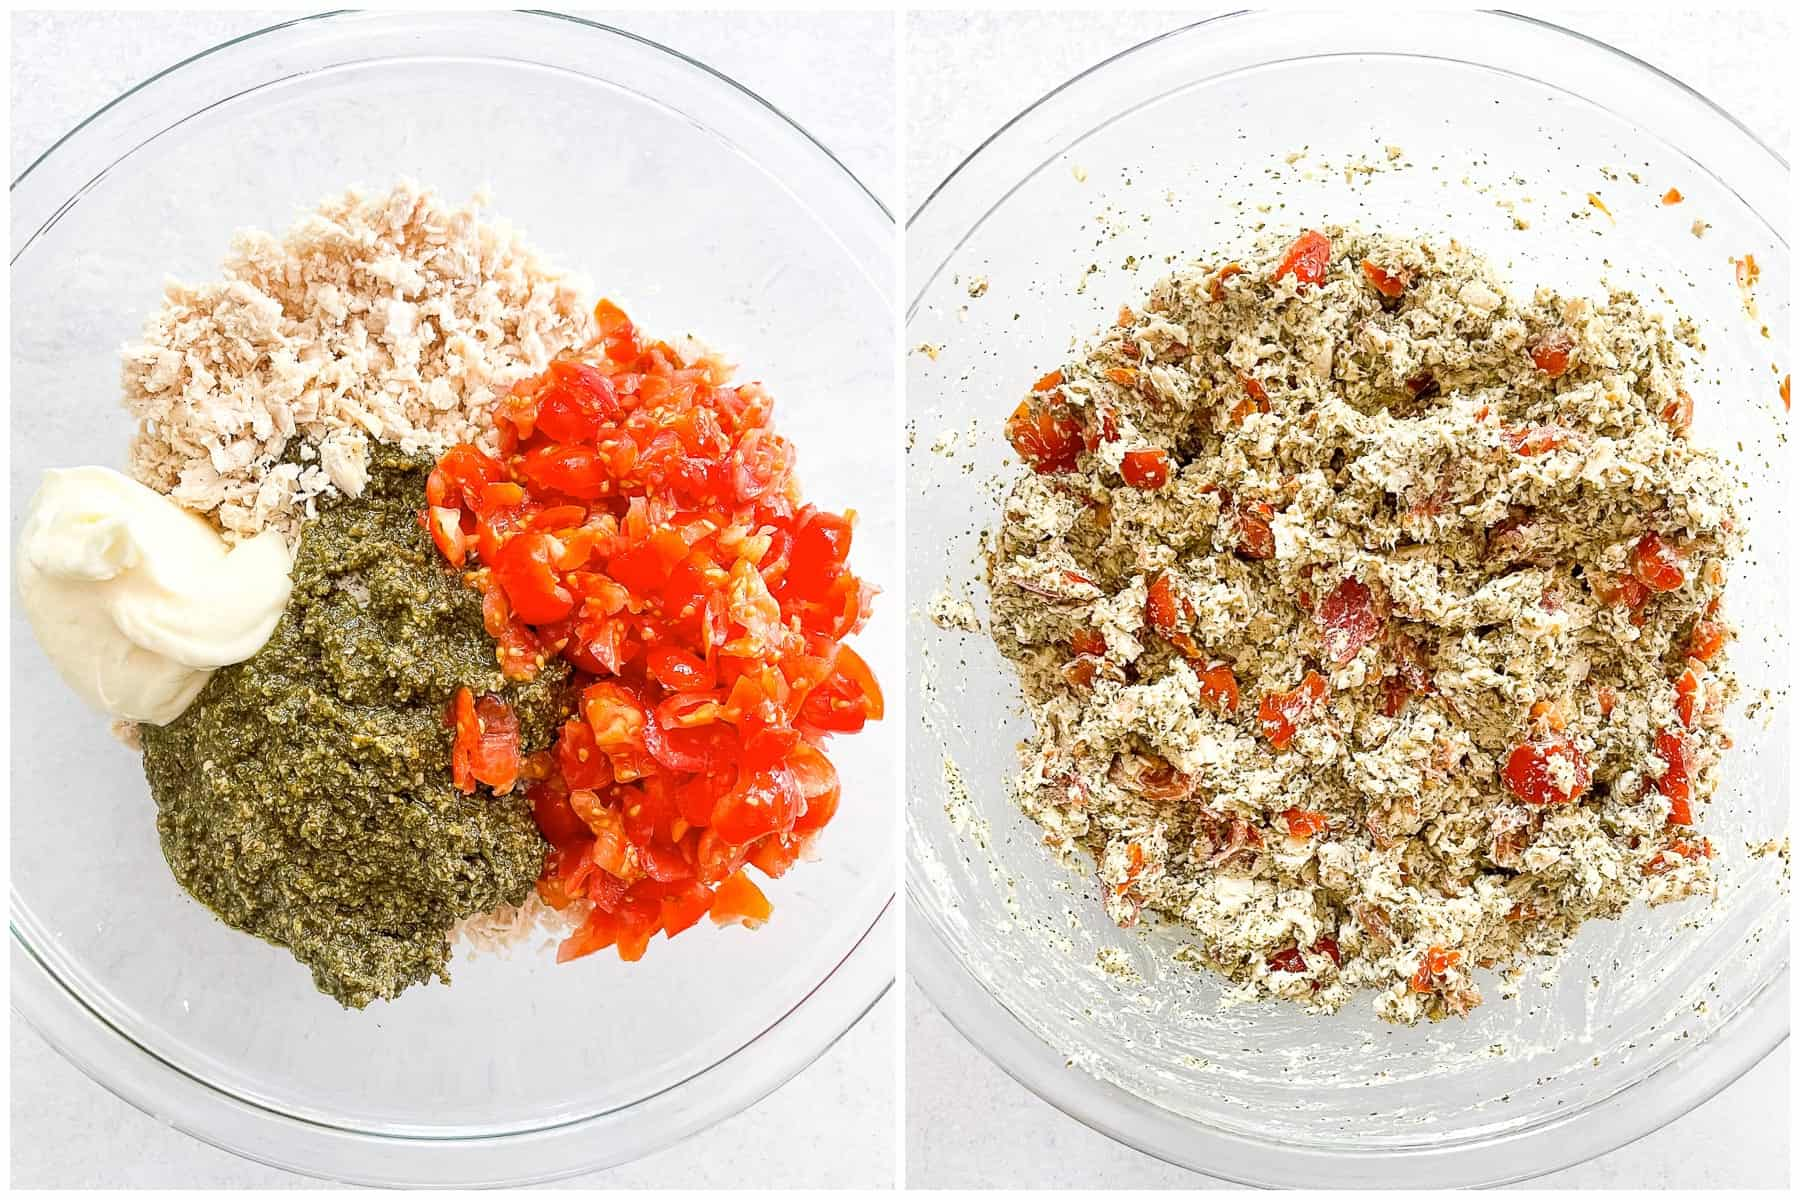 keto pesto chicken salad ingredients in a glass bowl on the left side, and all of the ingredients mixed together in a glass bowl on the right side.